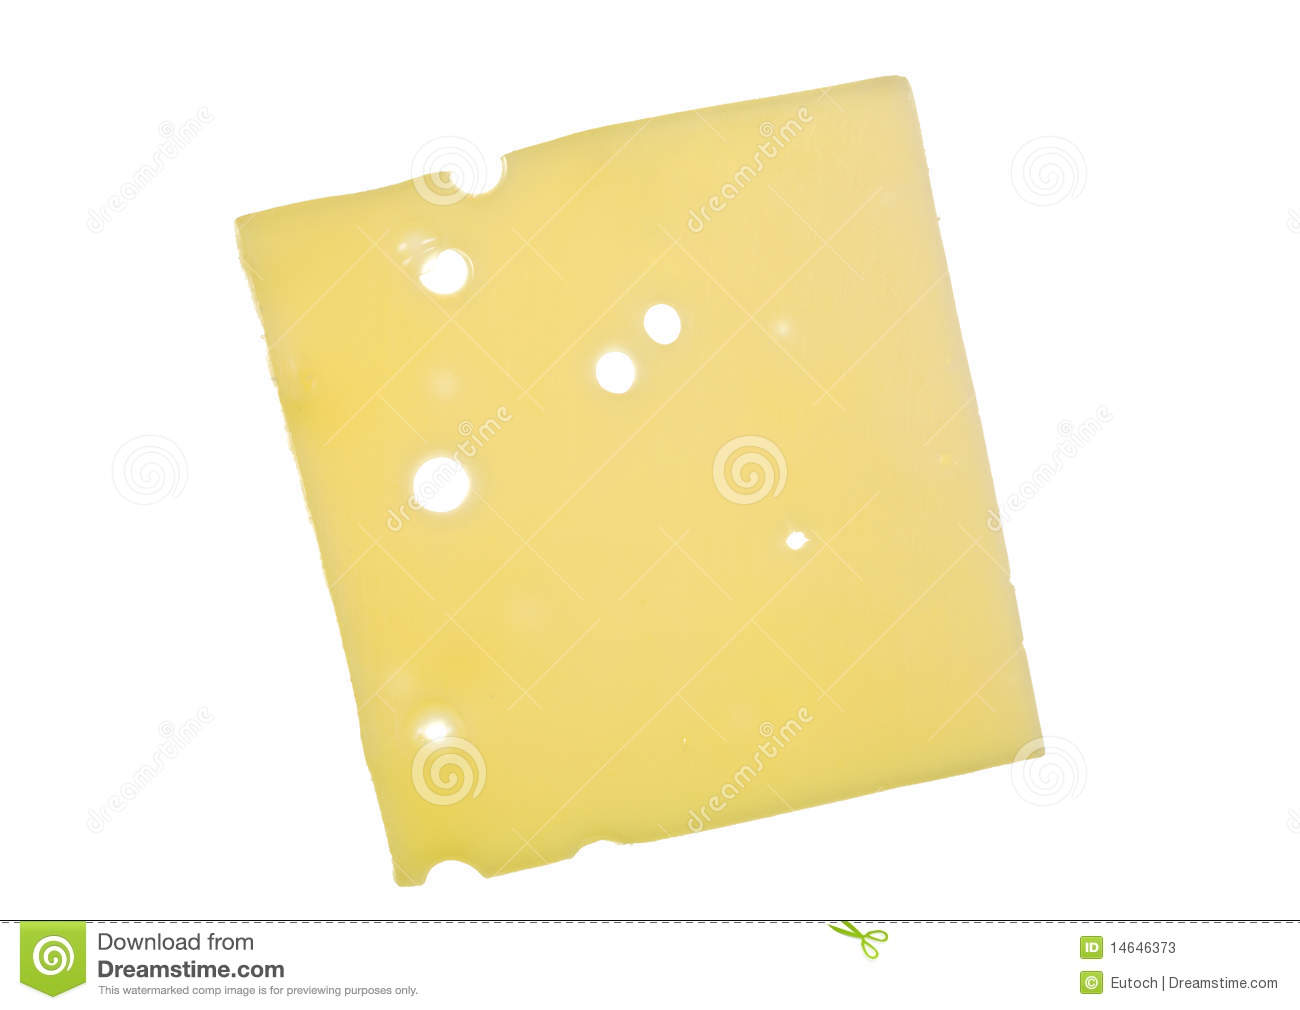 Slice of Swiss cheese close up; isolated on white background.